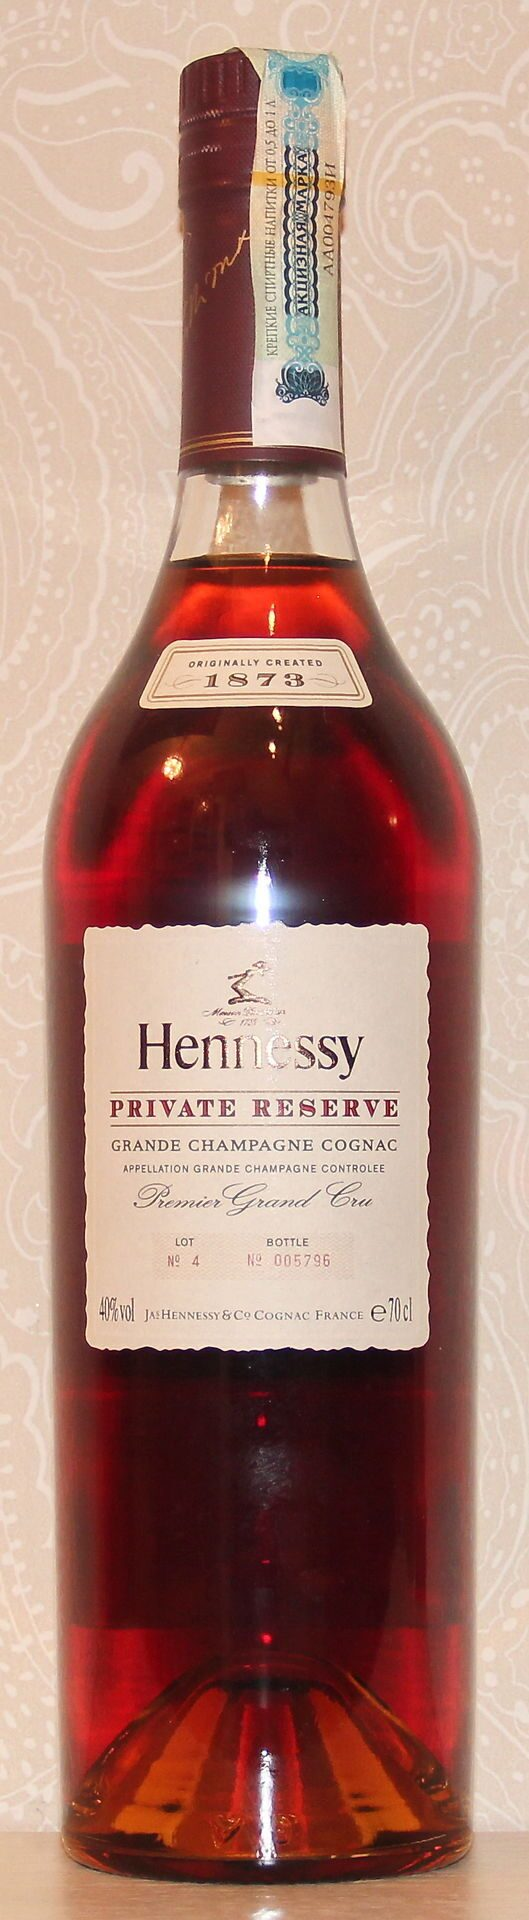 Hennessy Private Reserve 1873  2001